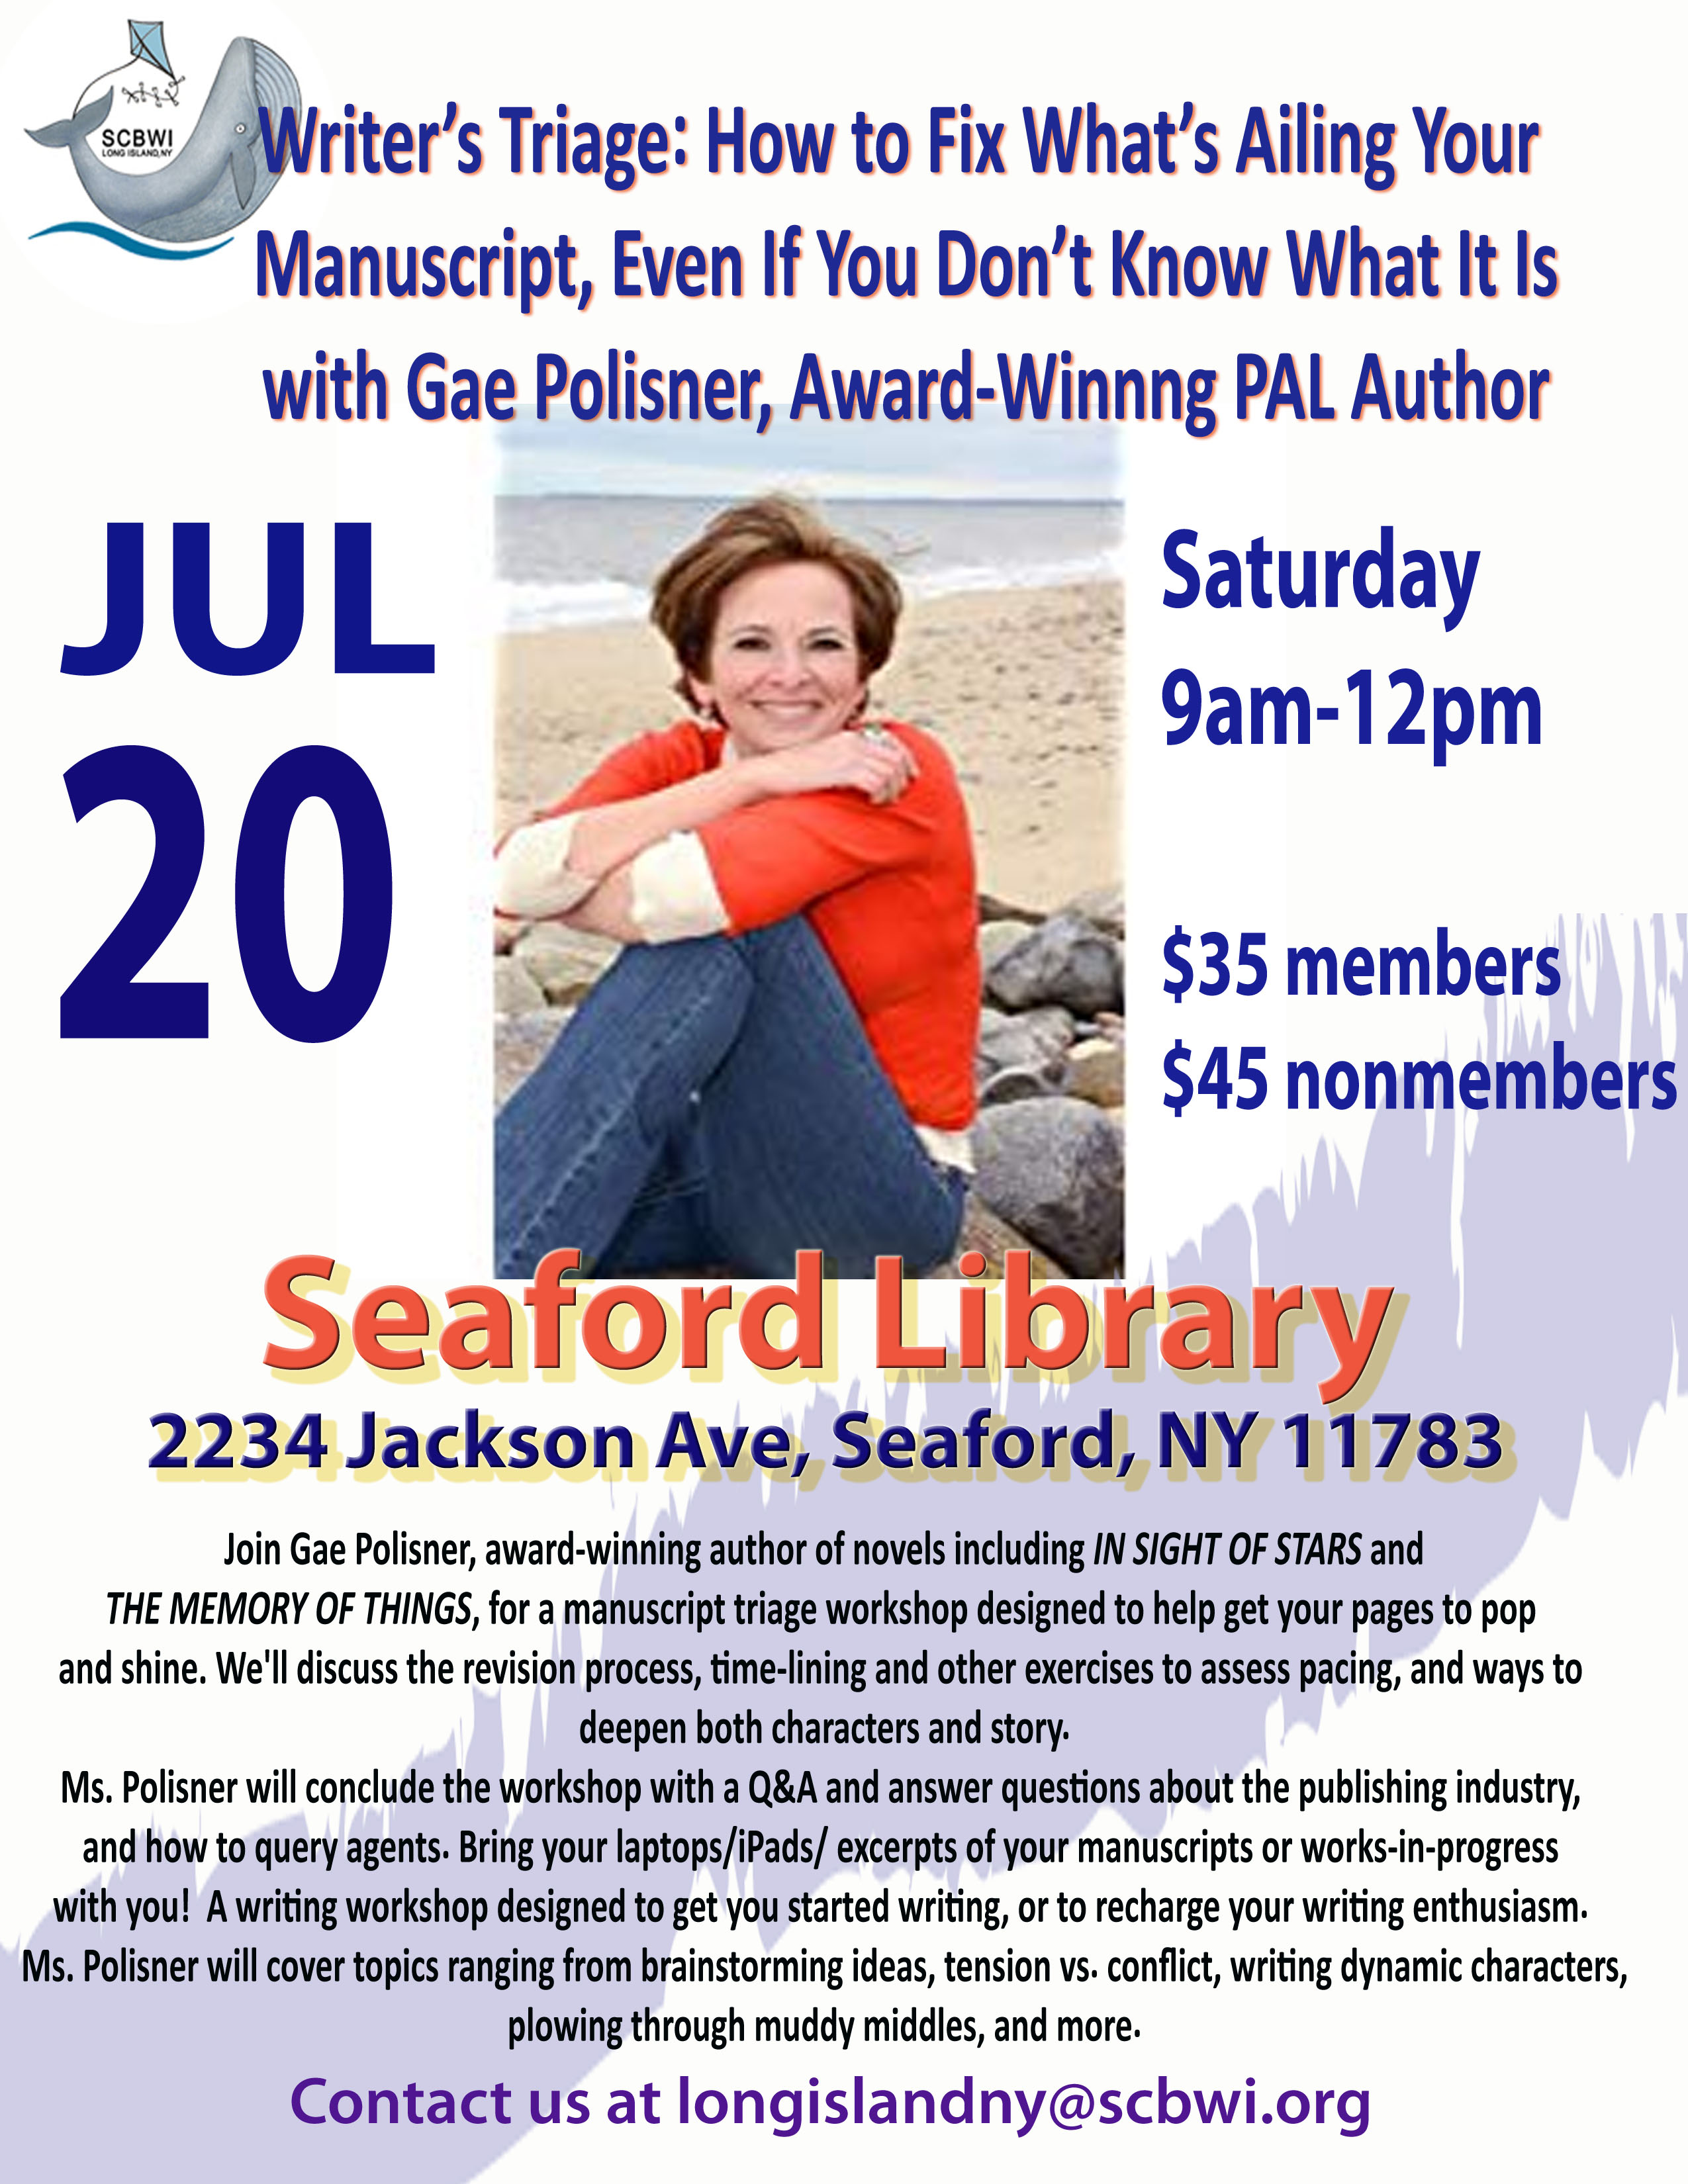 Gae Polisner's Website Click Here to Sign up and Register